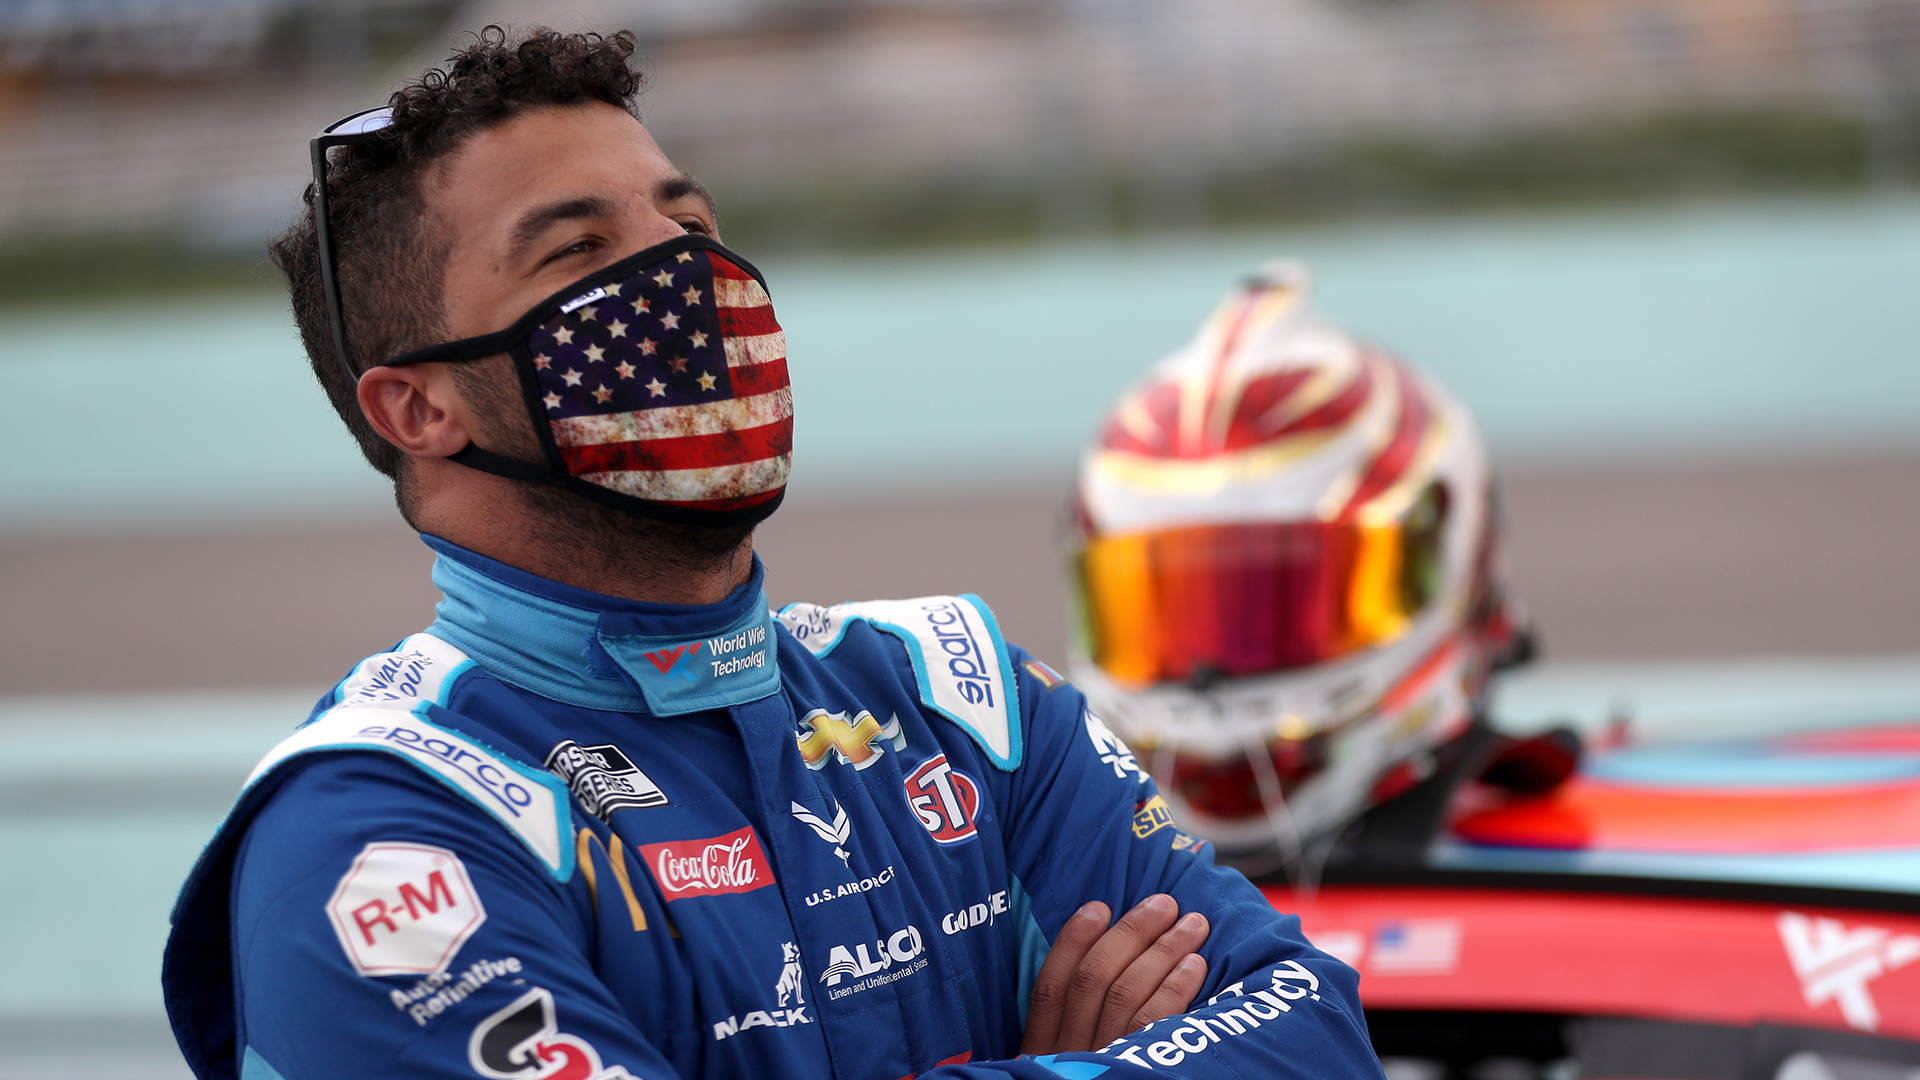 Mike Skinner's son said Bubba Wallace should've been dragged 'around the pits' with noose 1